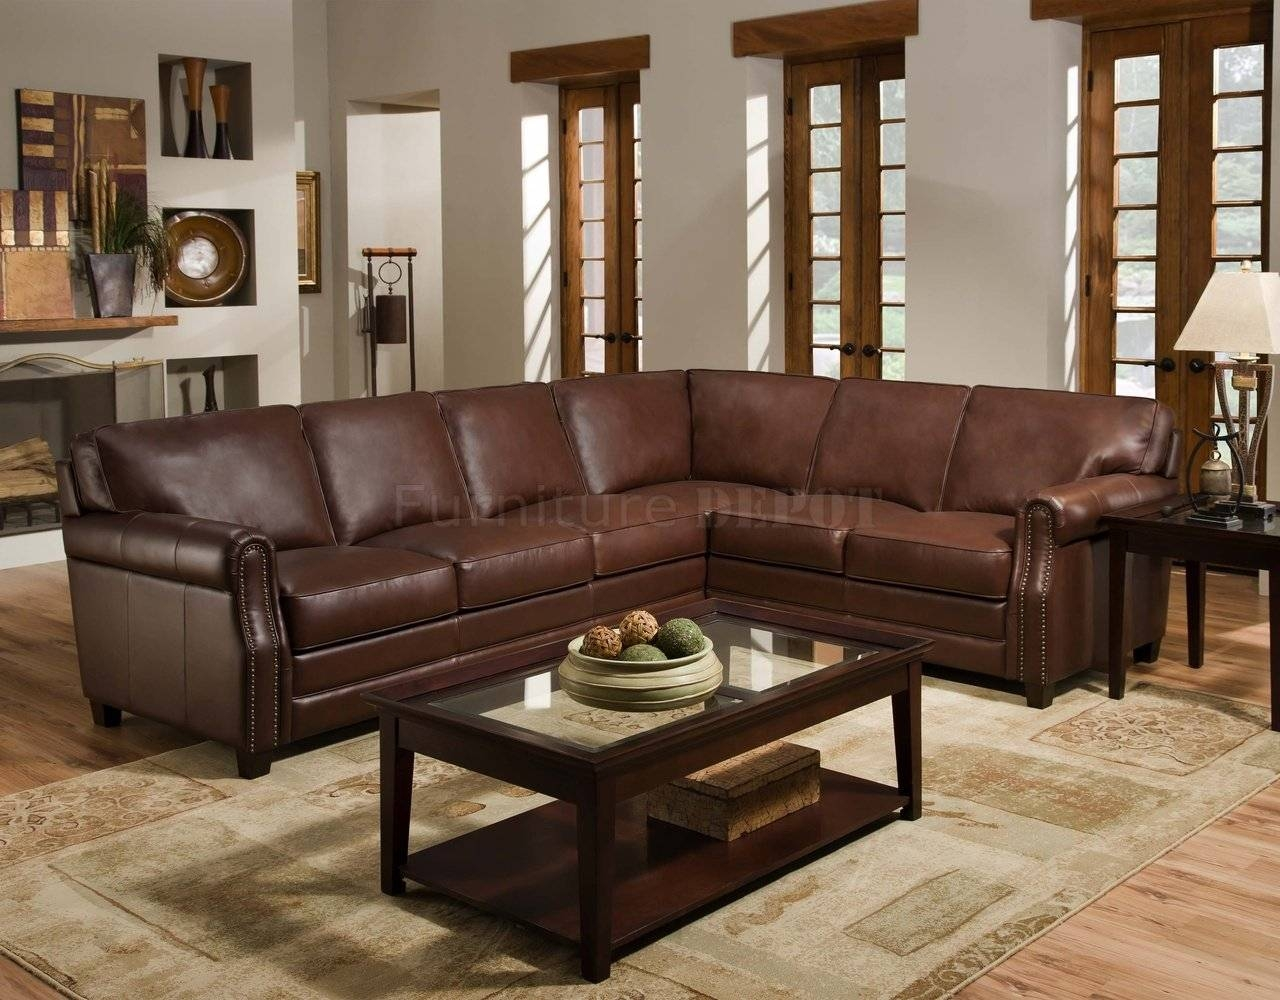 Cocoa Brown Top Grain Italian Leather Traditional Sectional Sofa intended for Traditional Leather Sectional Sofas (Image 5 of 15)